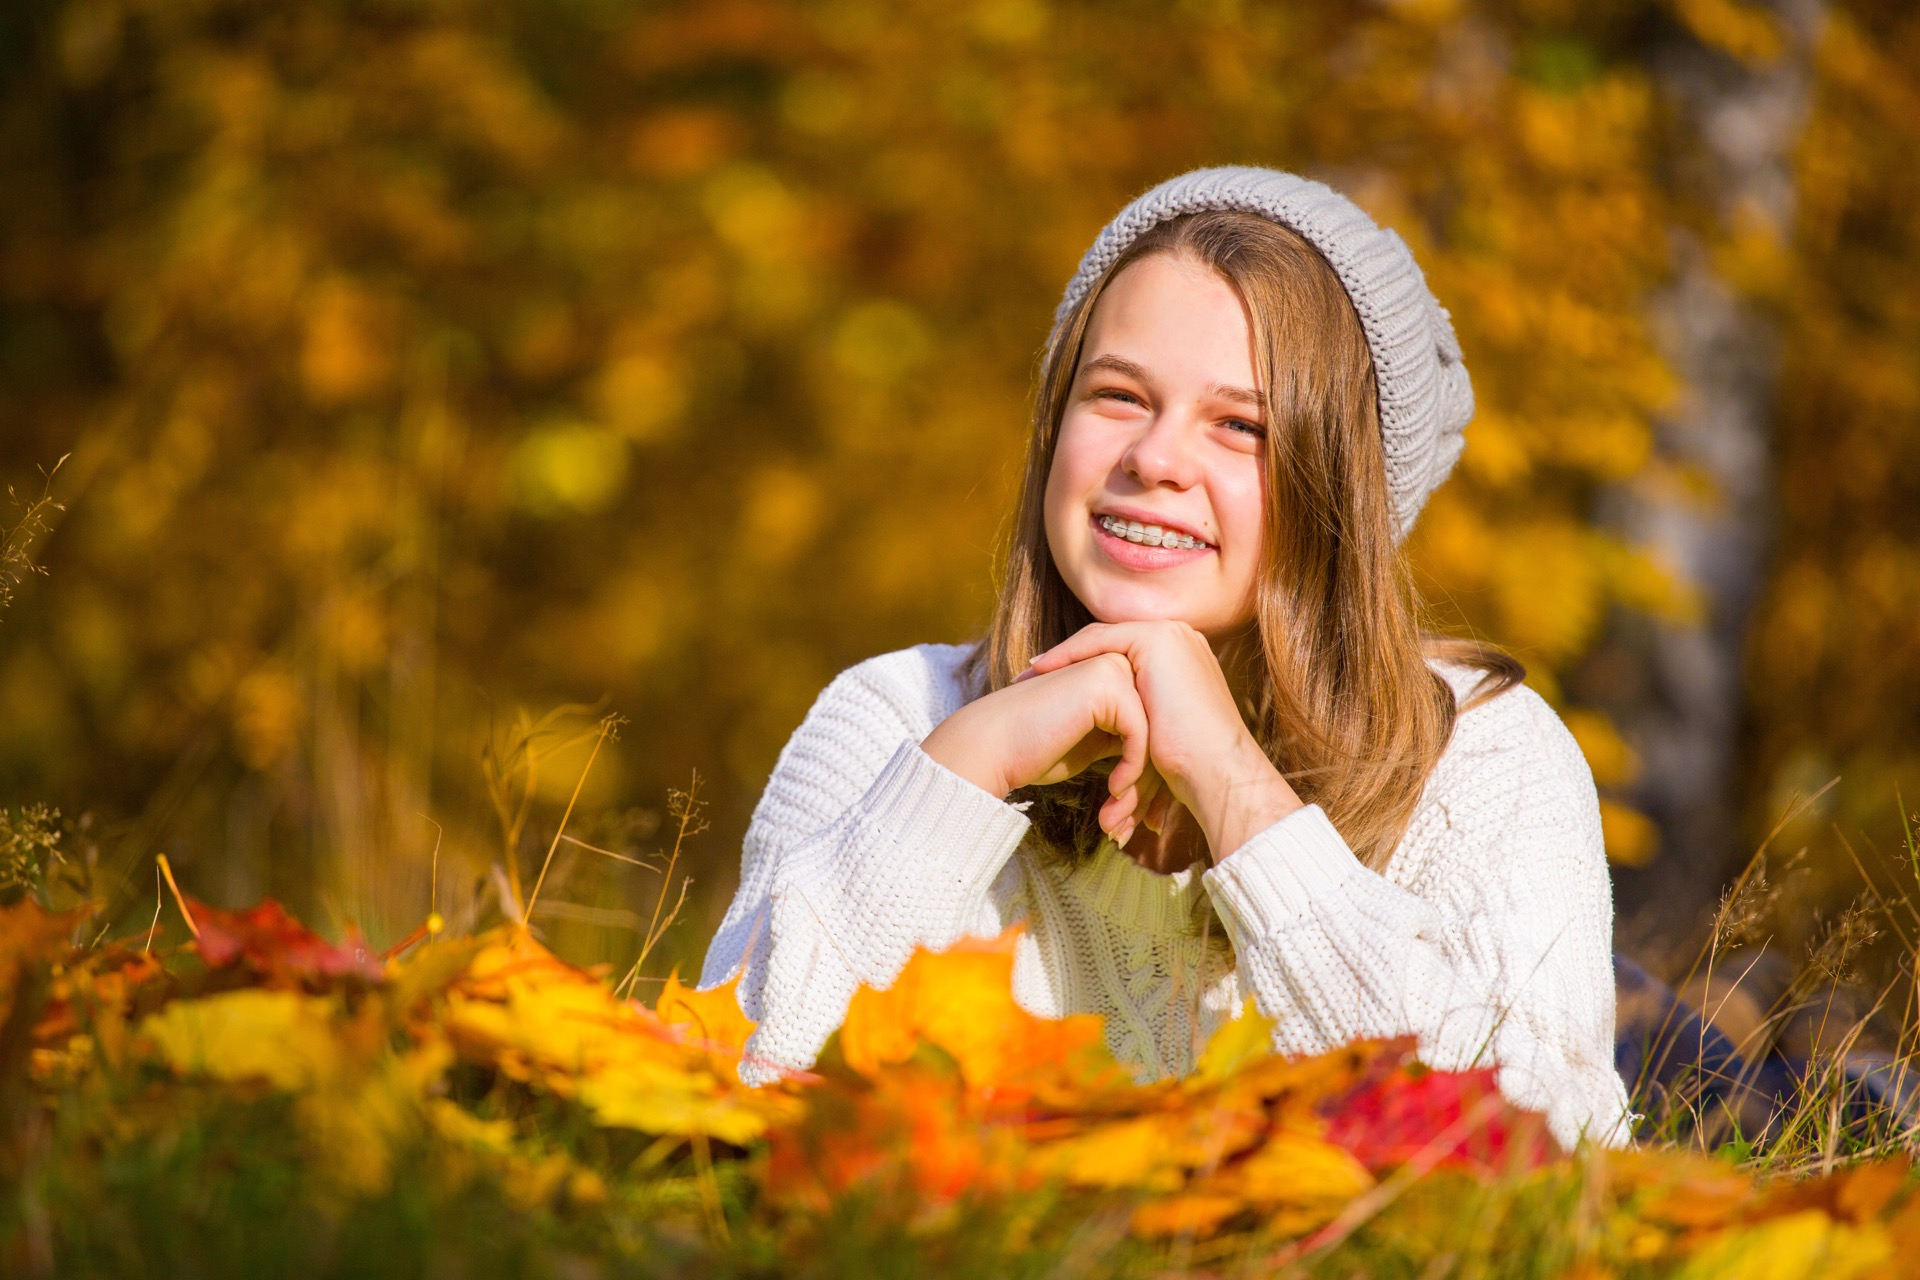 Teenage girl with braces in park in autumn